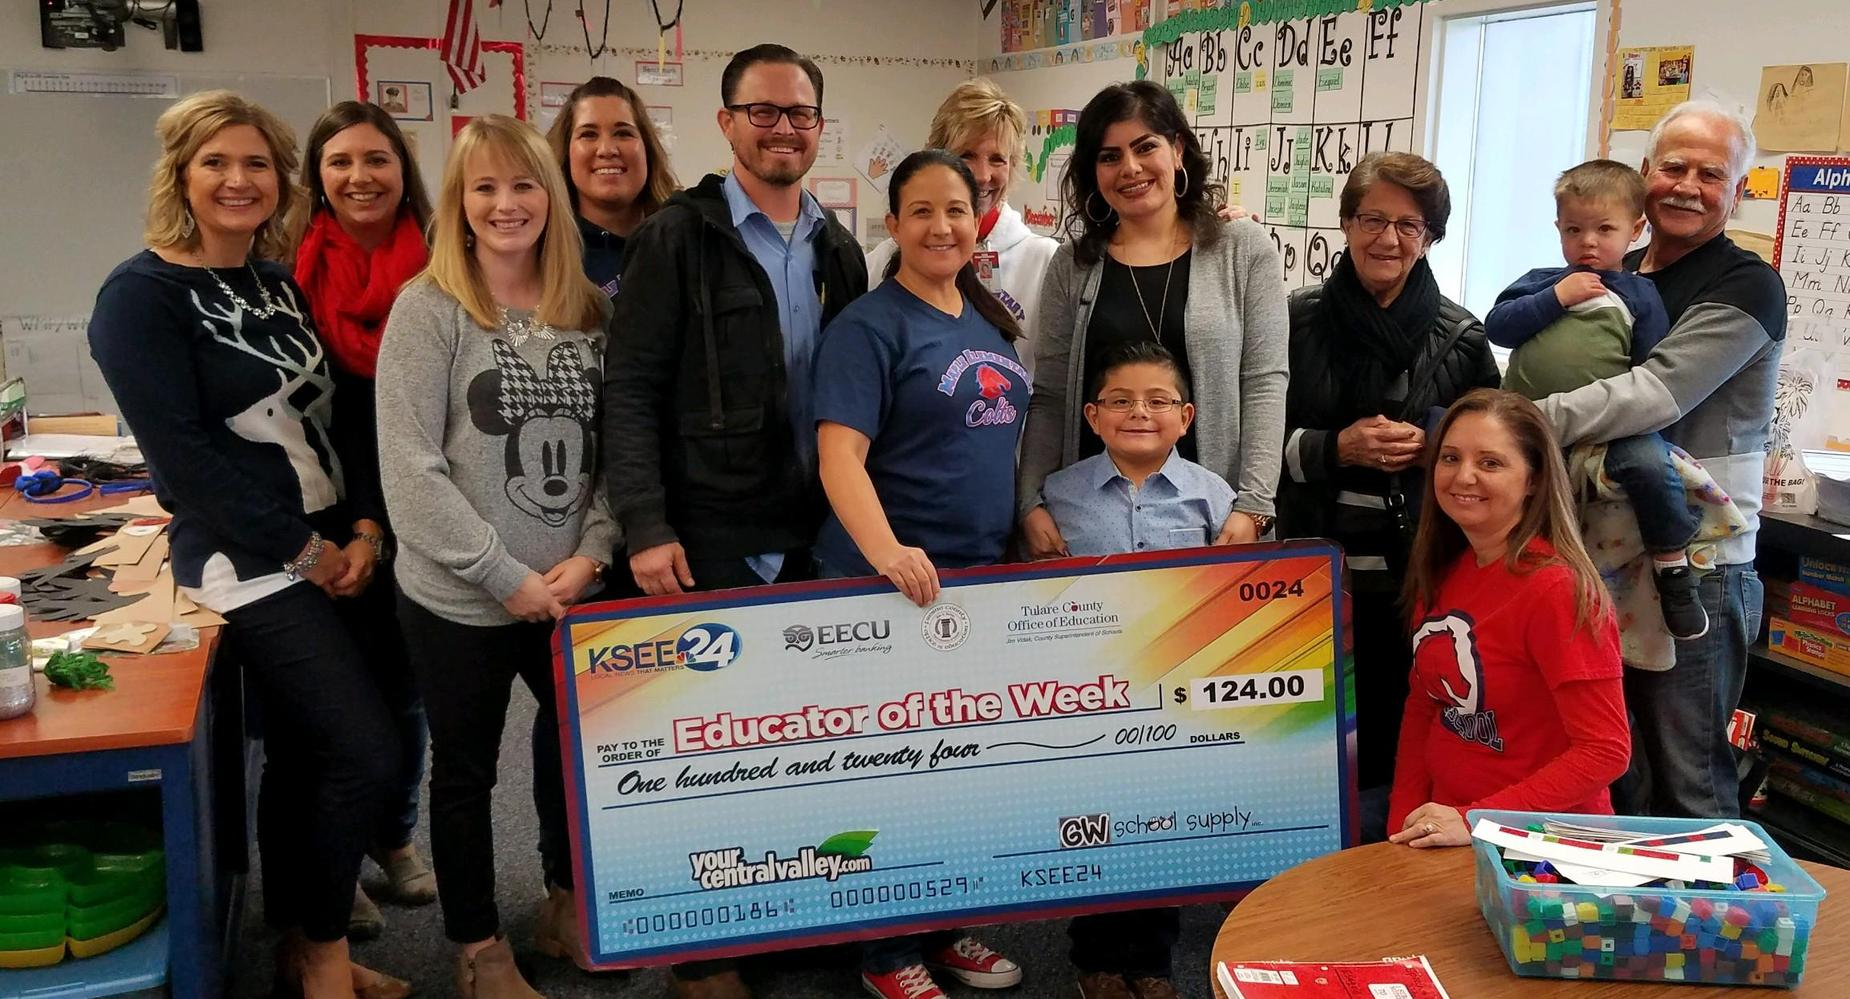 KSEE 24 Educator of the Week